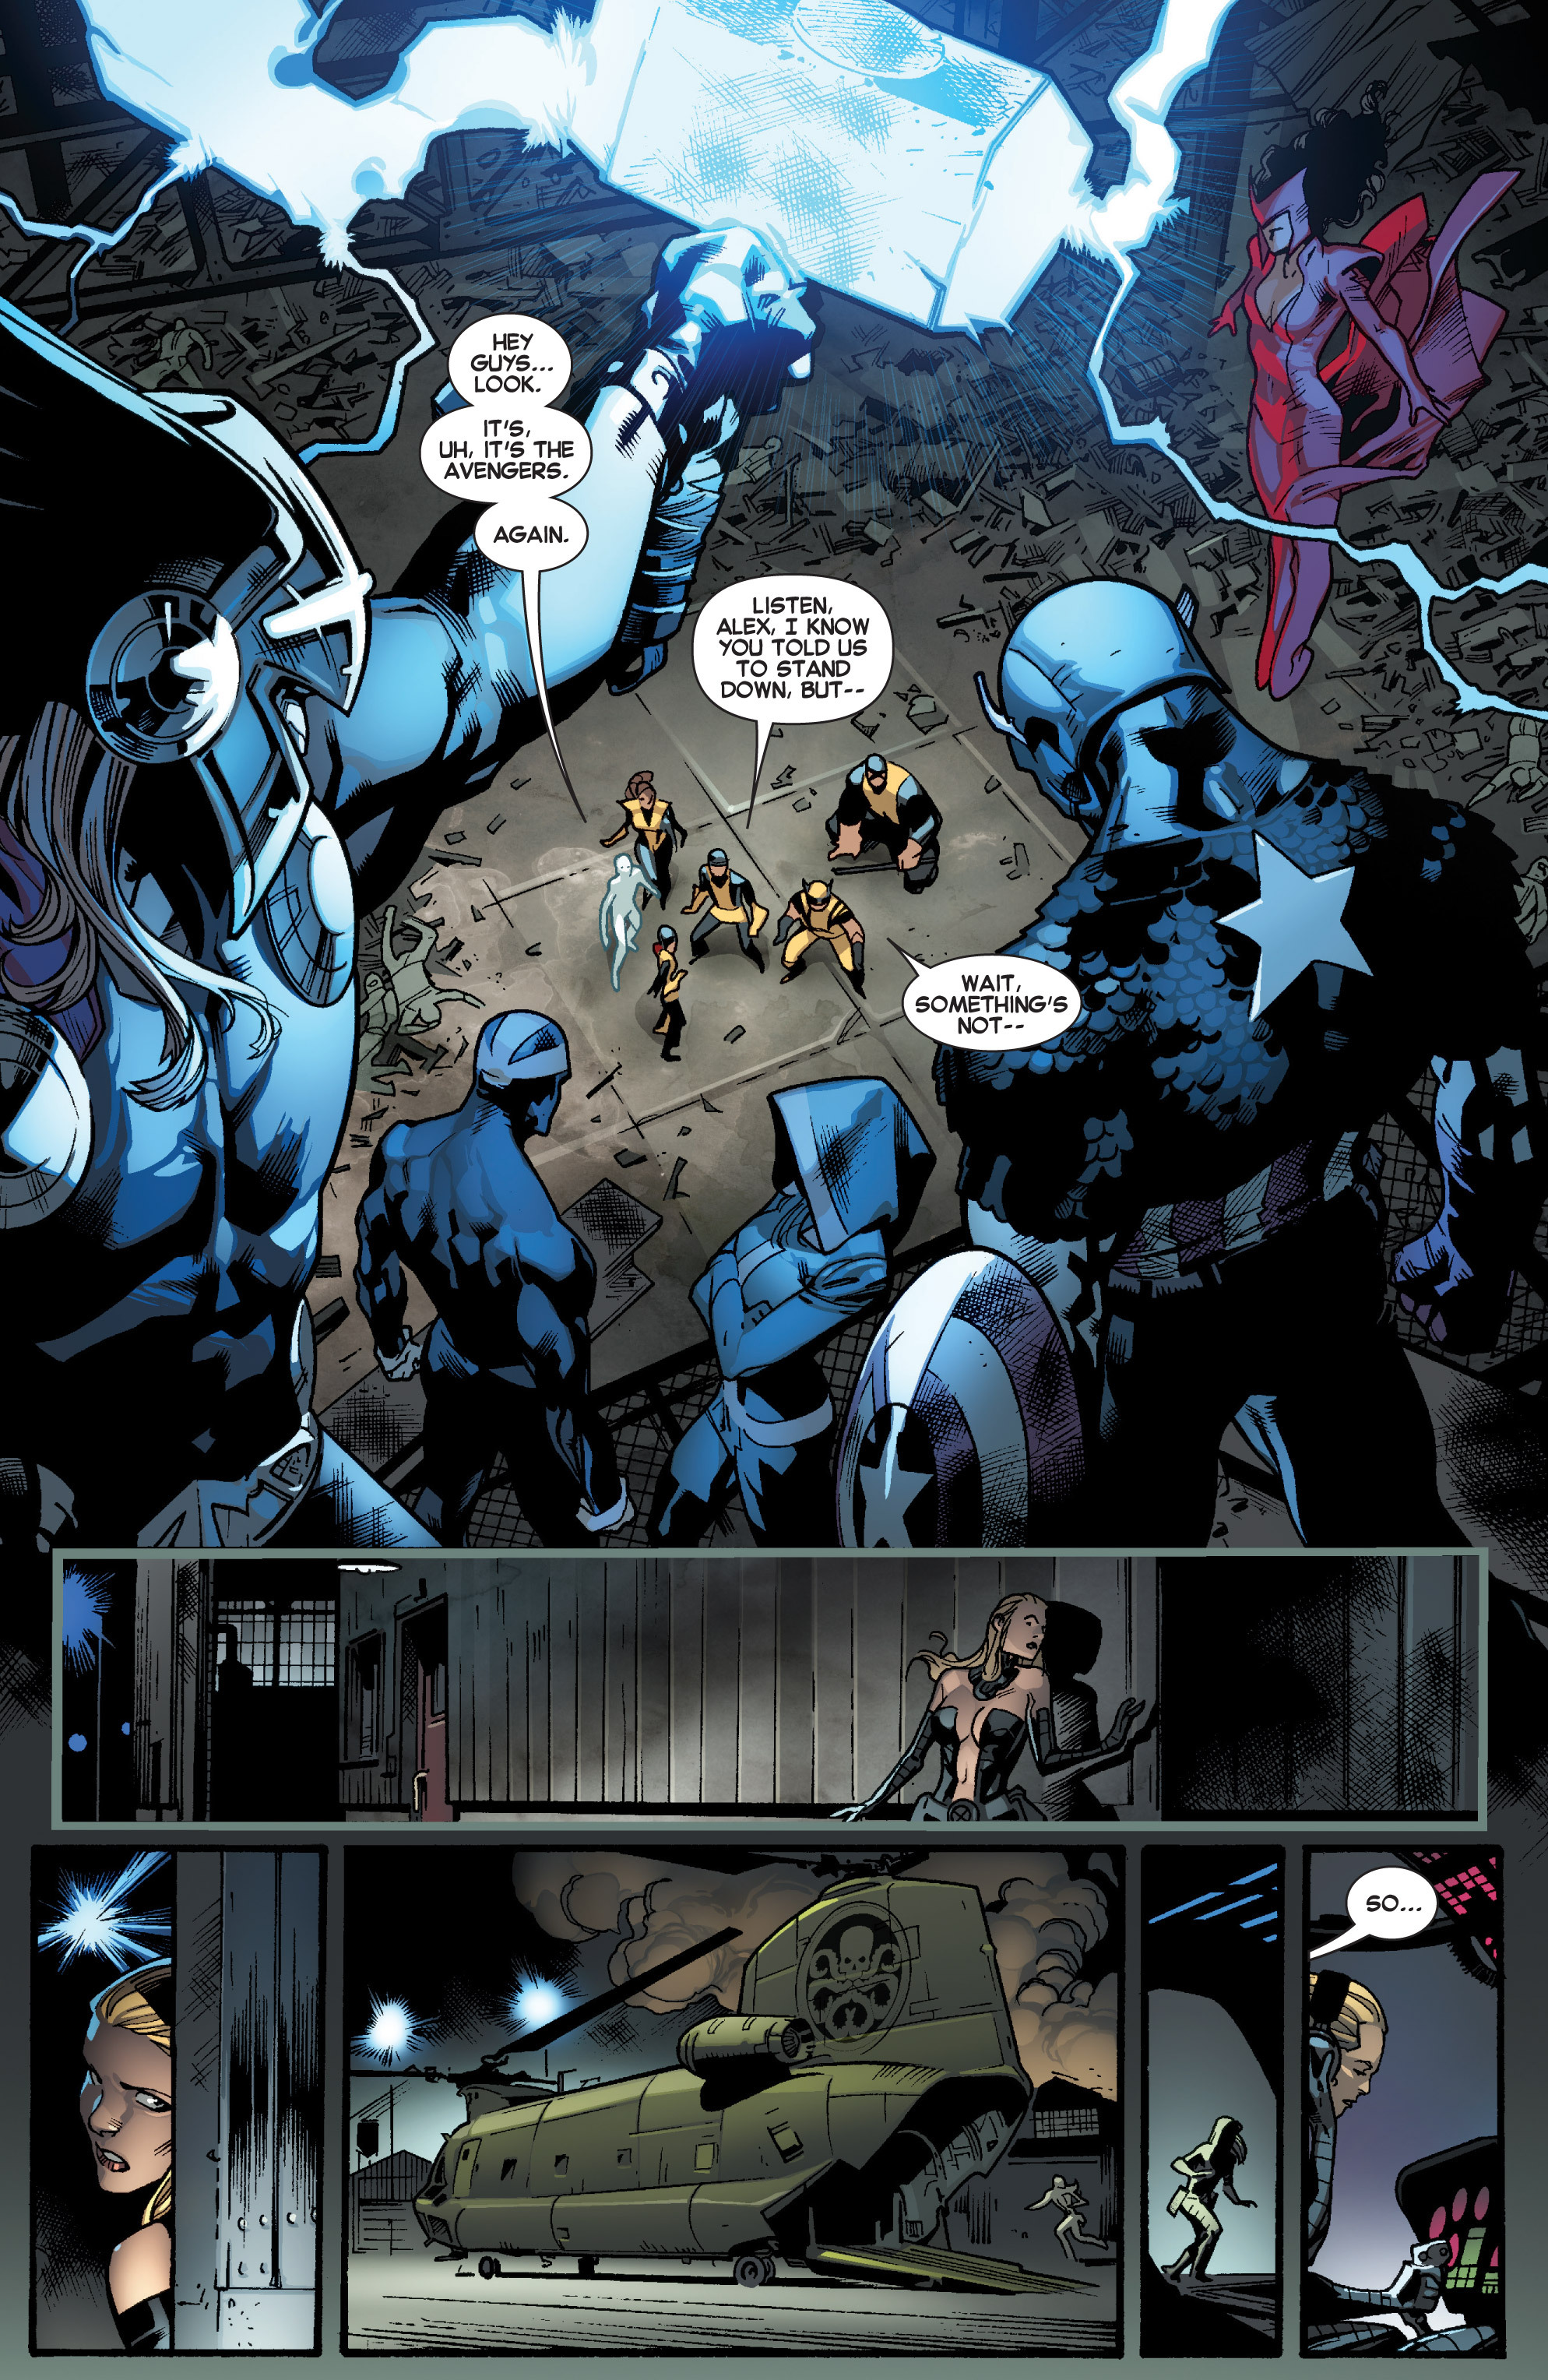 Read online All-New X-Men (2013) comic -  Issue # _Special - Out Of Their Depth - 81